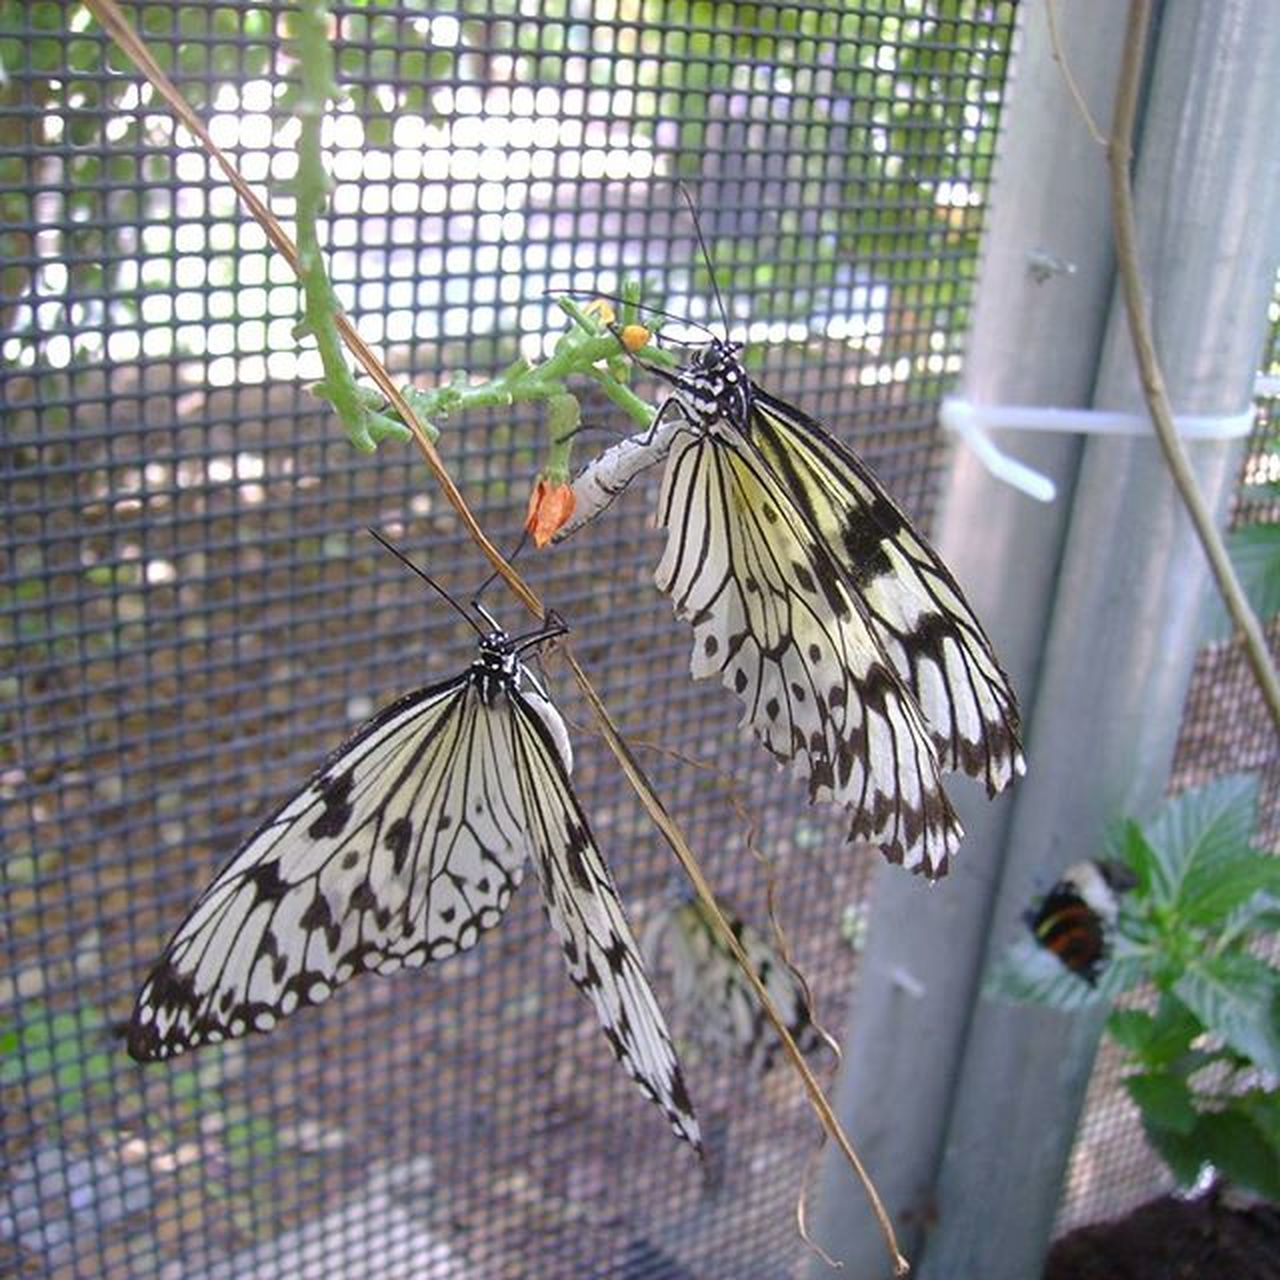 Butterflies Nature Photography Macro Photography San Antonio Zoo Close Up Photography No Edit No Filter Photography